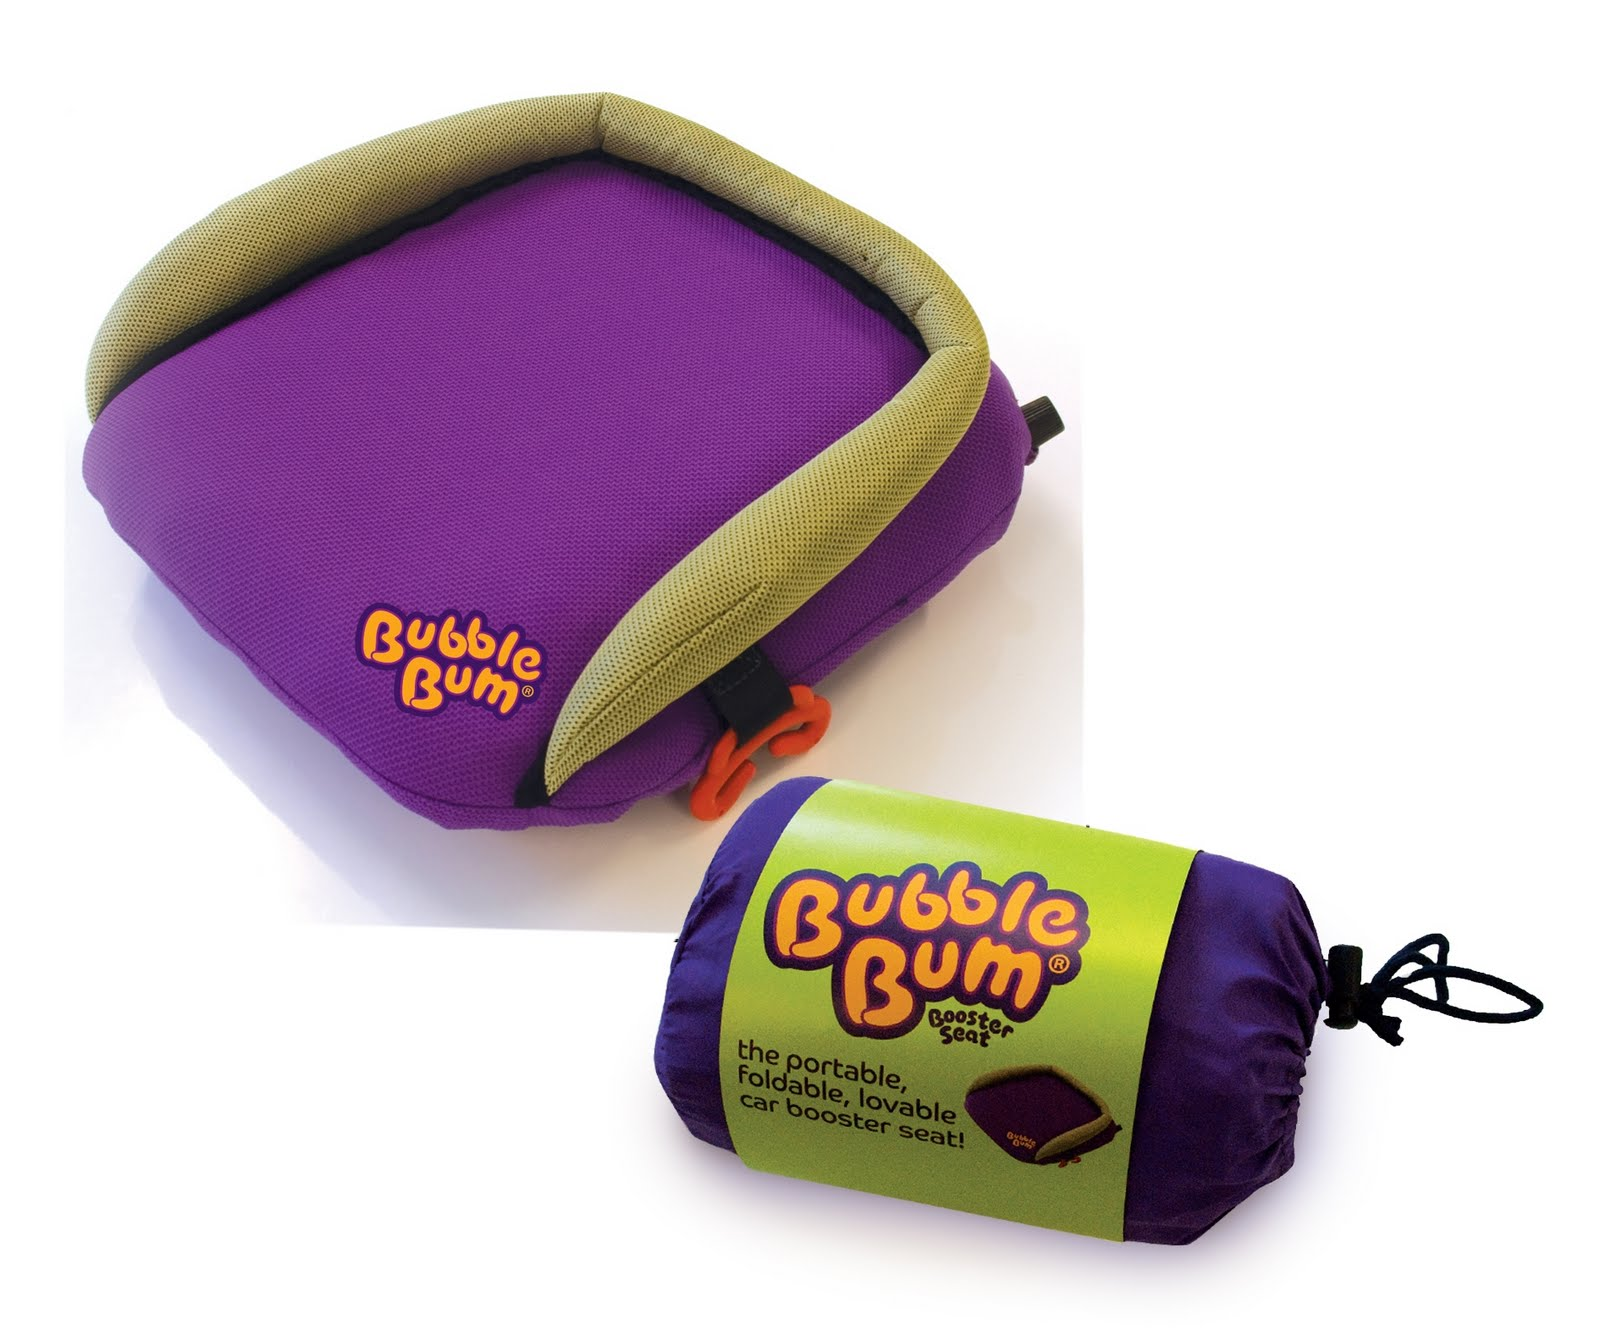 The Five Fs blog: Review: BubbleBum booster seat